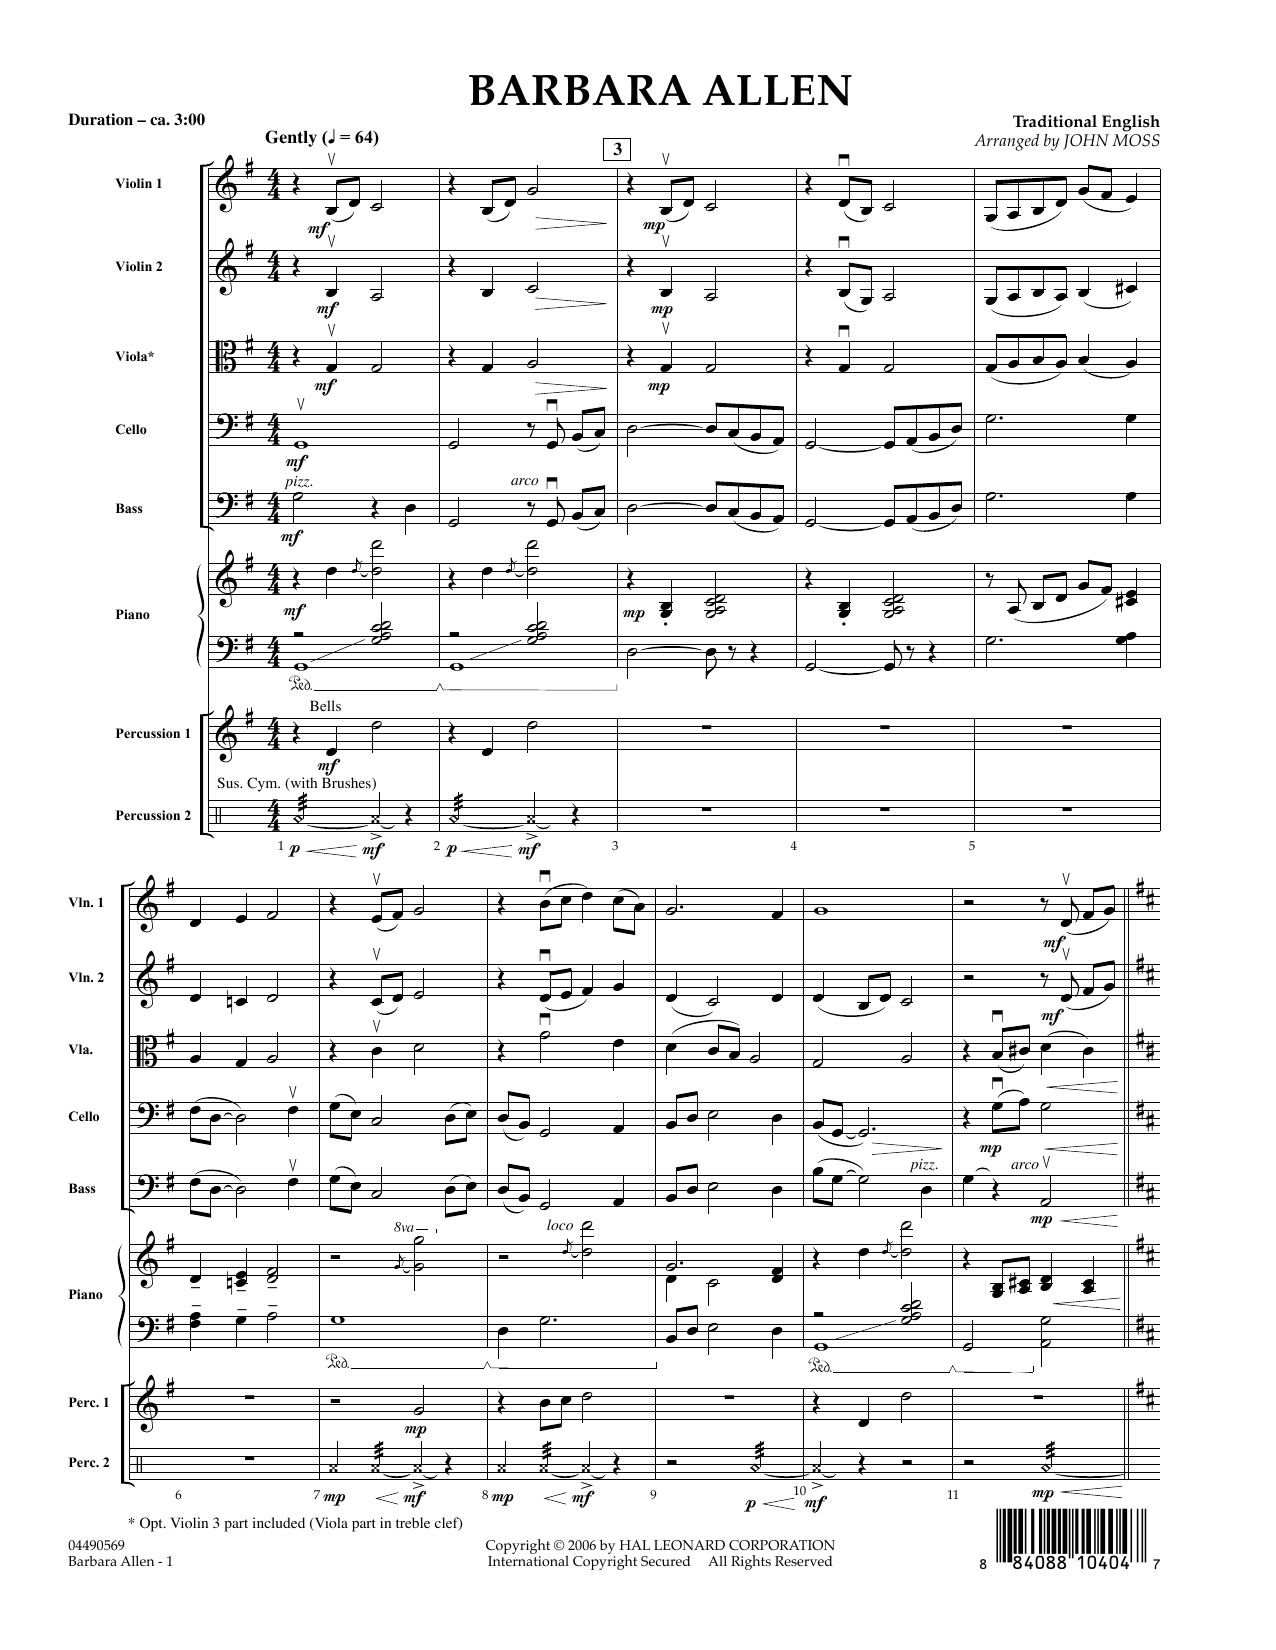 Barbara Allen (COMPLETE) sheet music for orchestra by John Moss